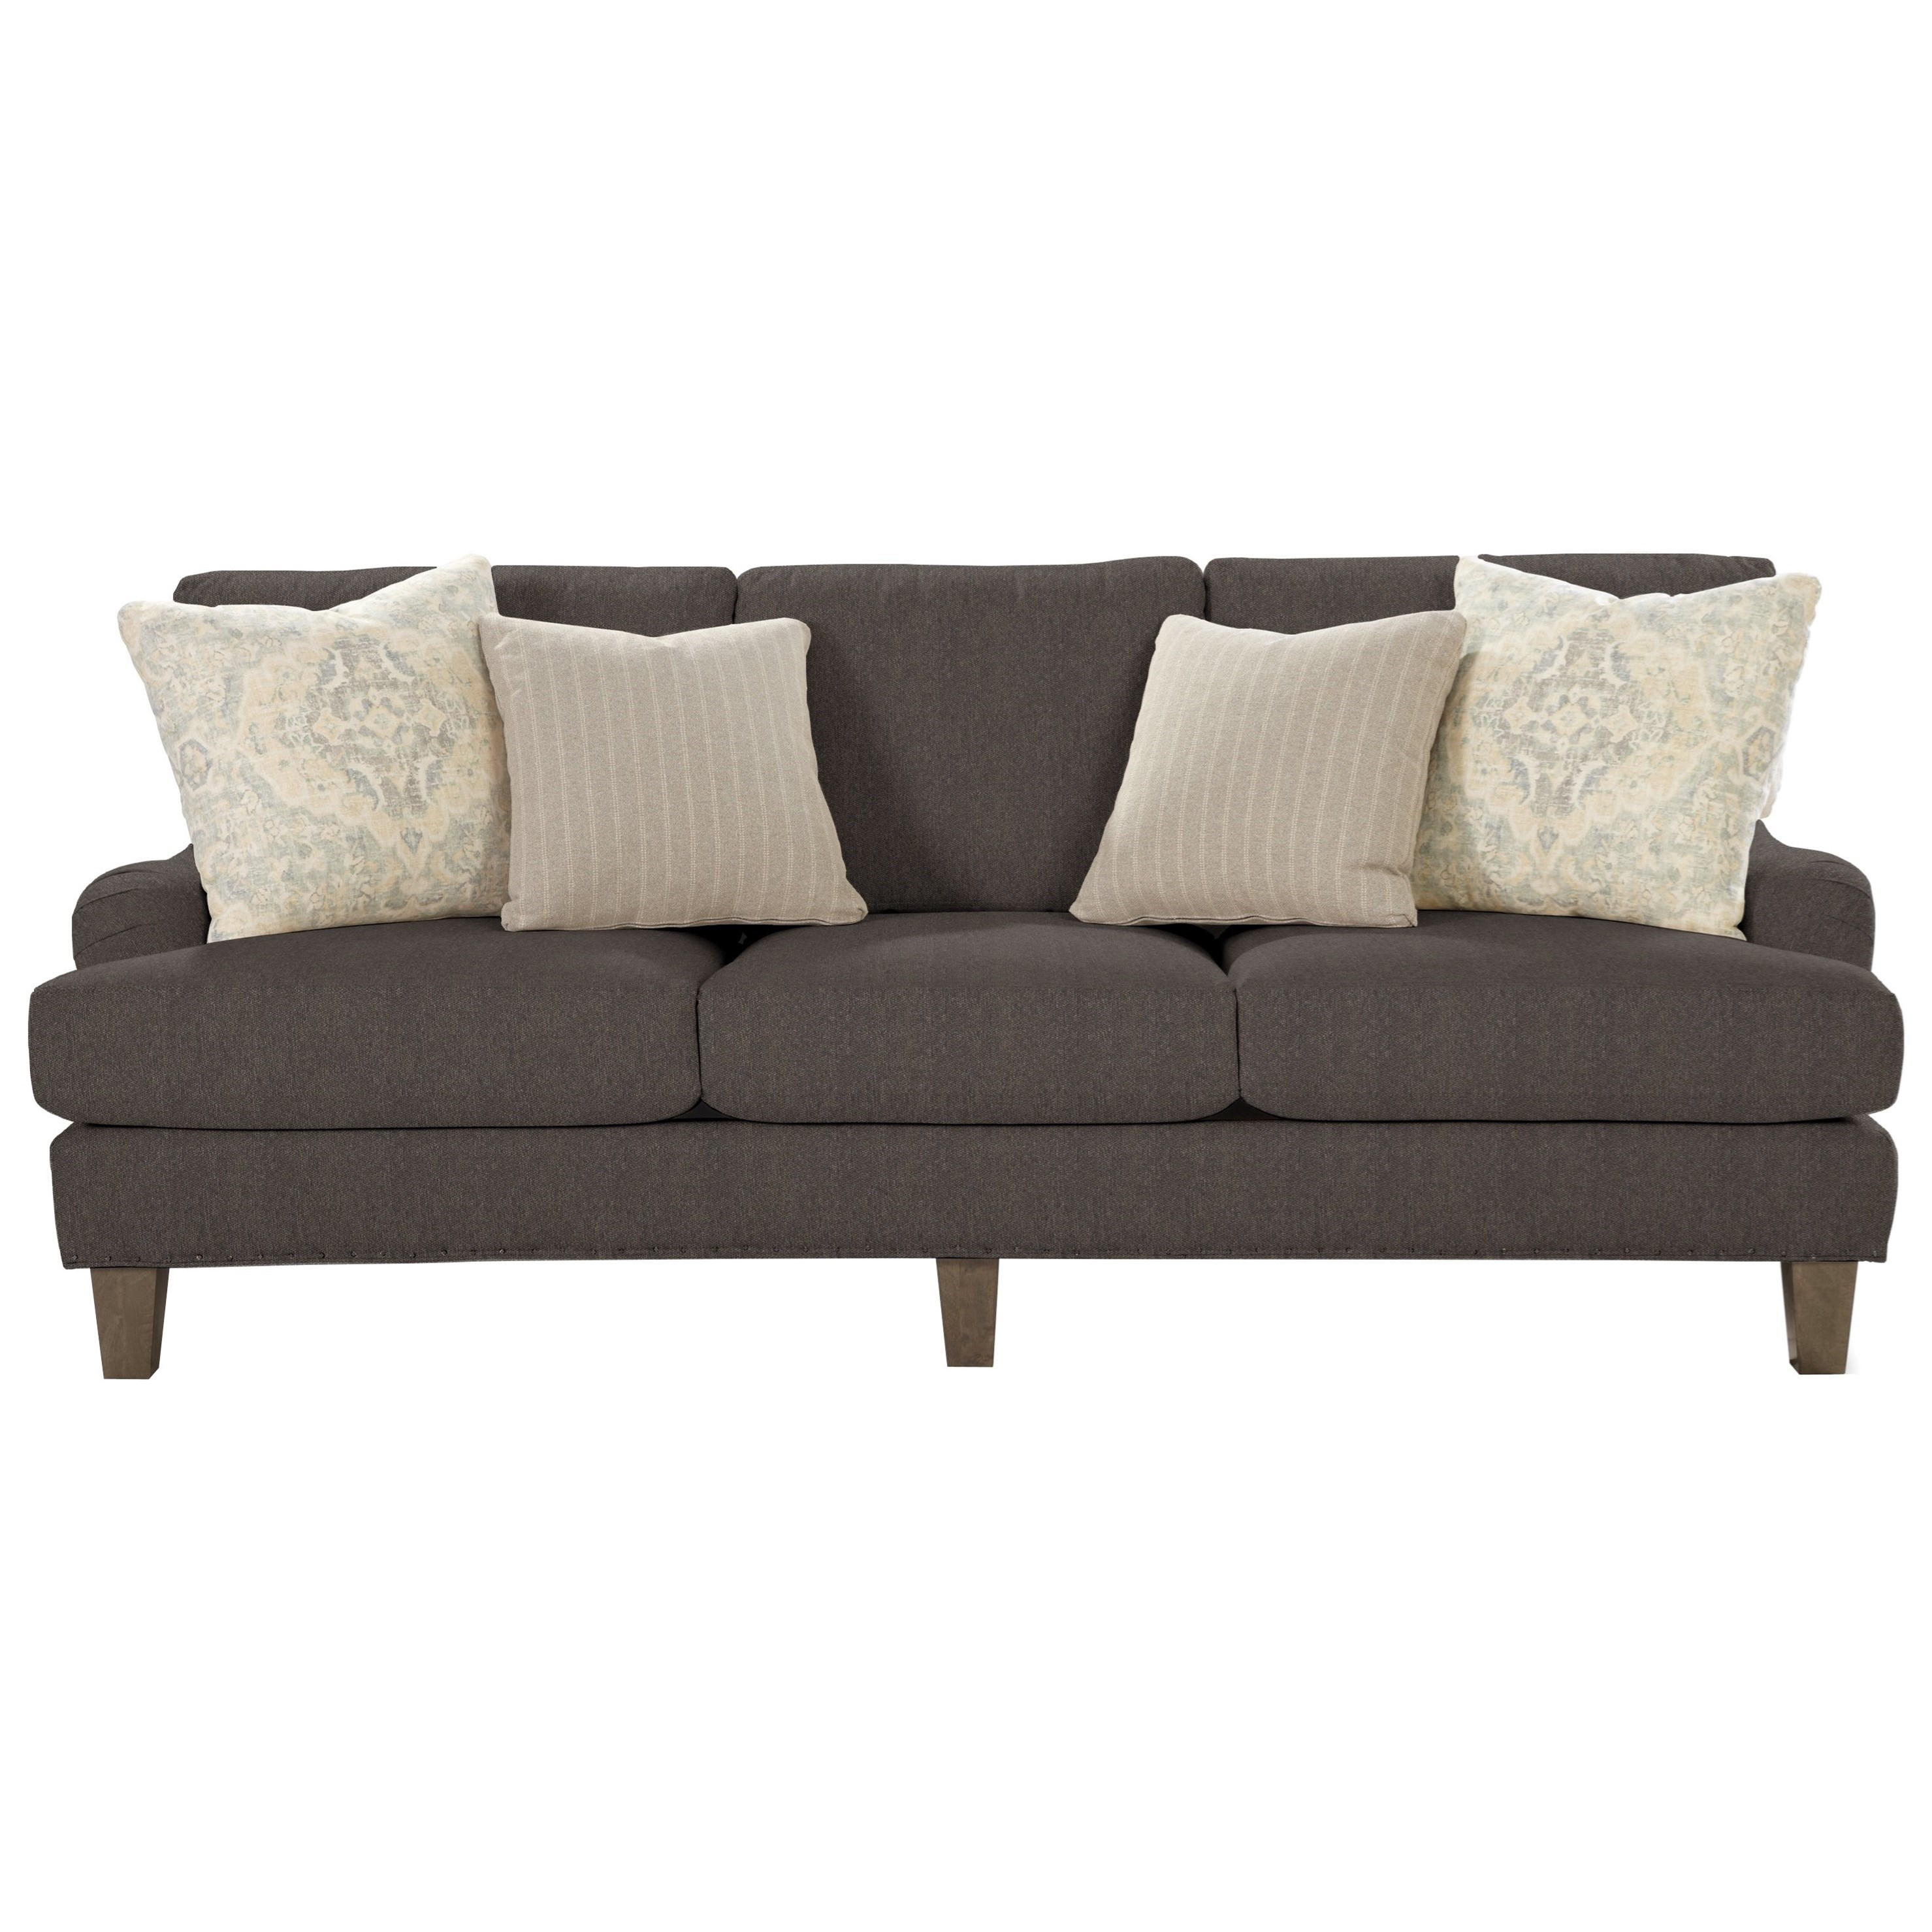 7429 Sofa by Craftmaster at Lindy's Furniture Company